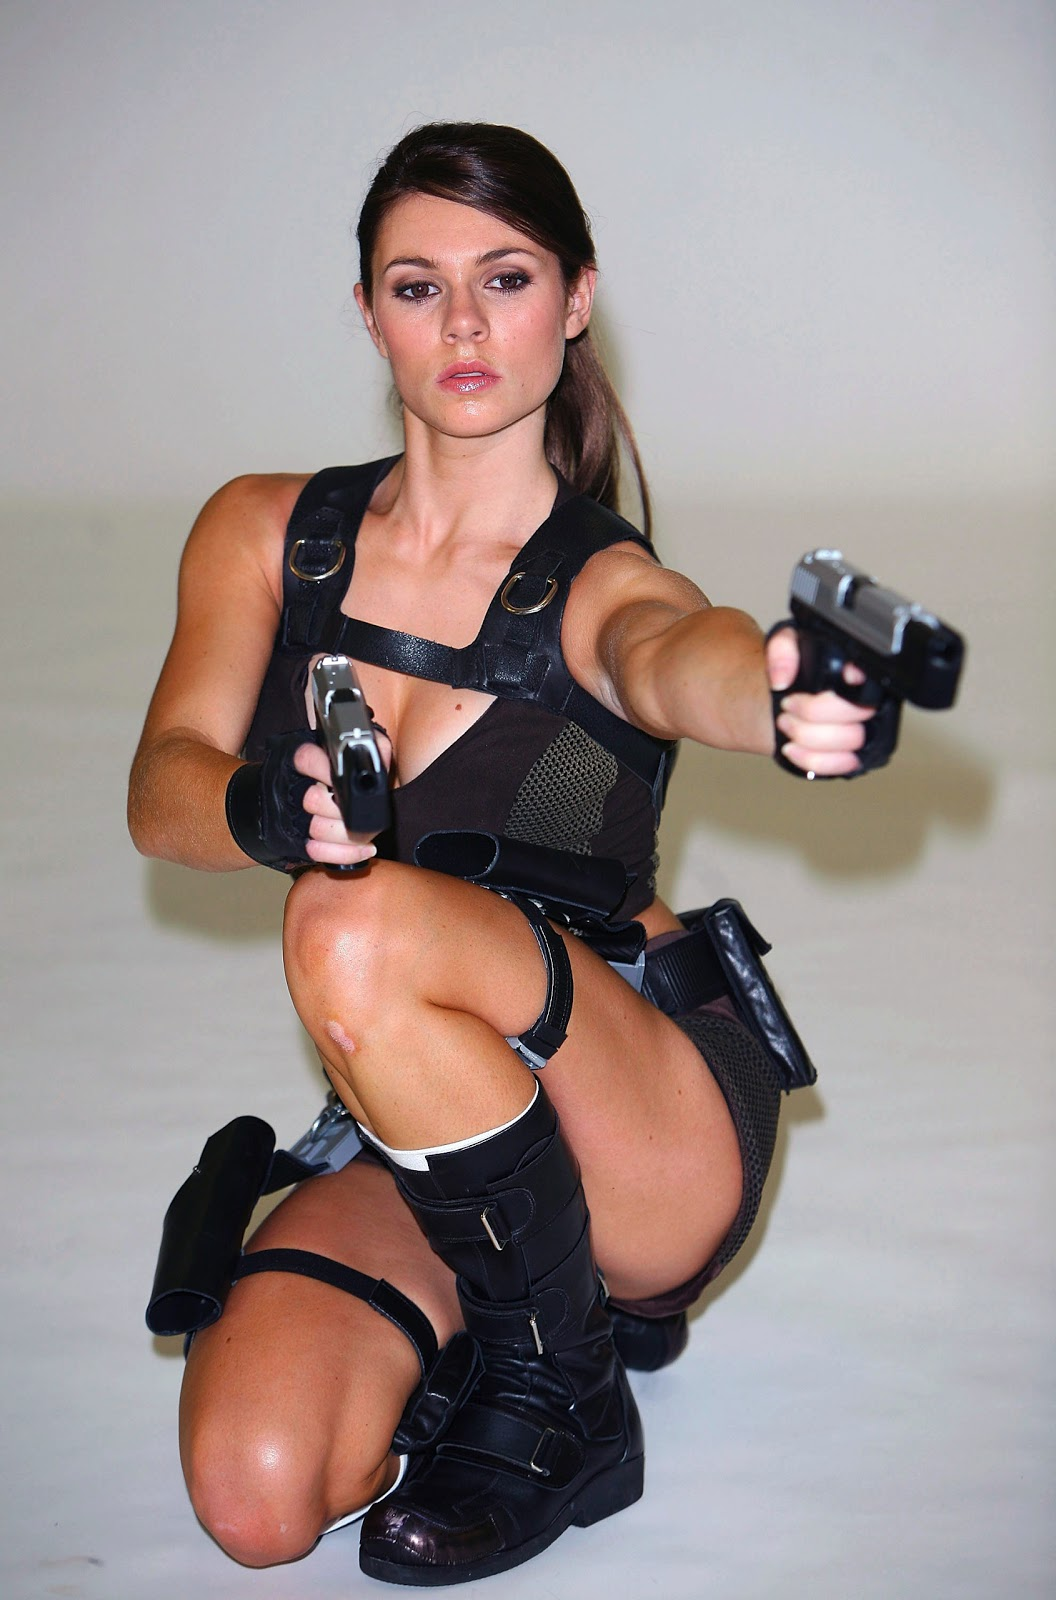 Sexy girls with guns join